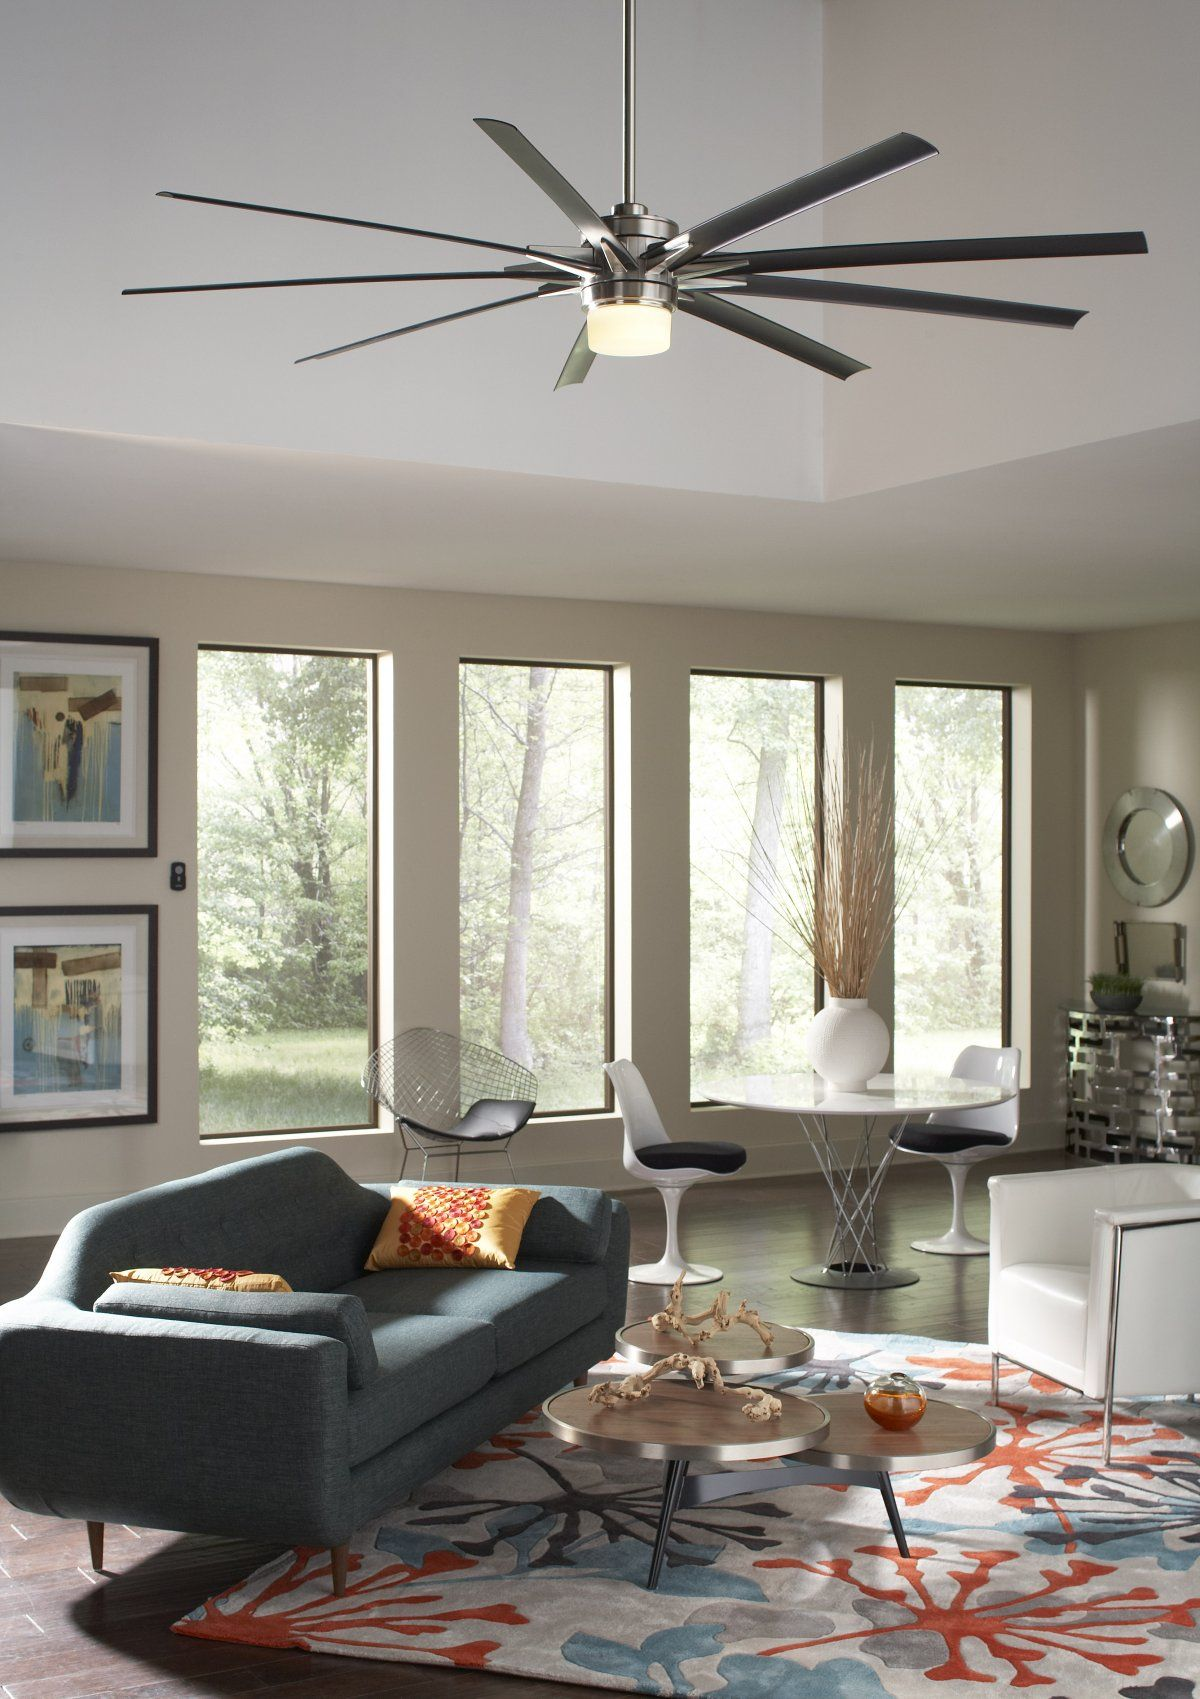 Interior Ceiling Fans Decorating With Ceiling Fans Interior Design Ideas That